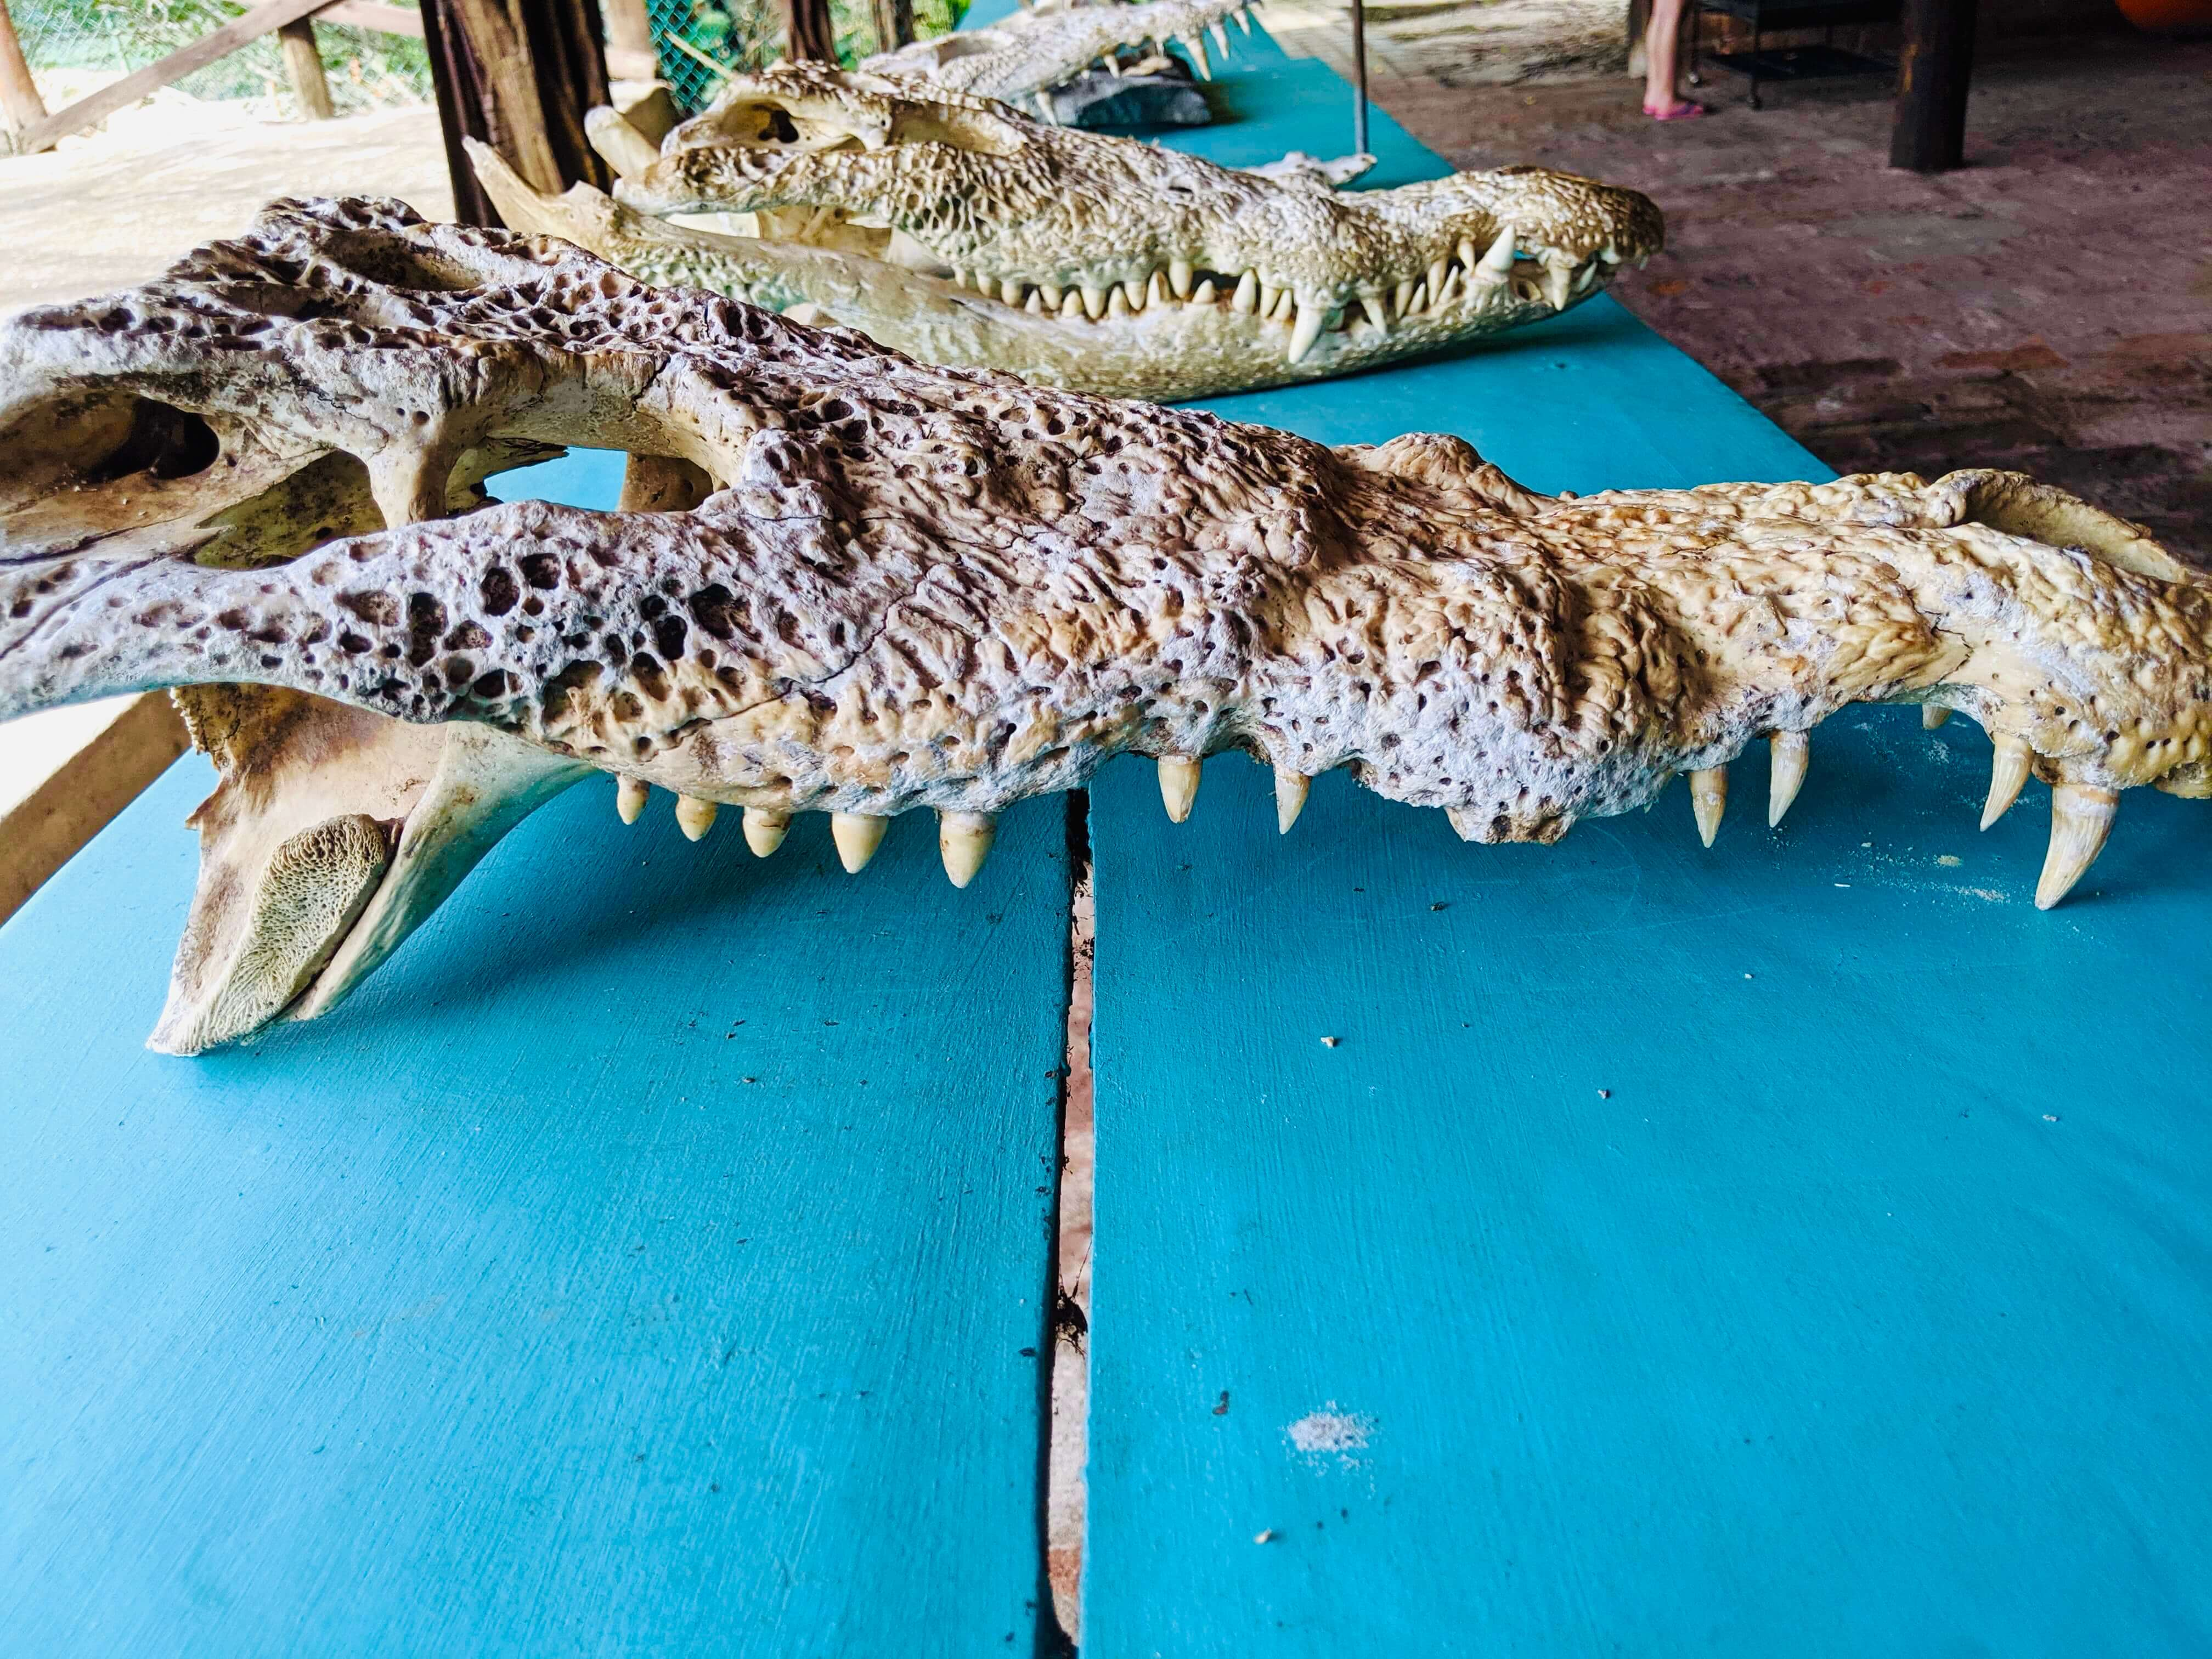 The skulls of three crocodiles that were killed here from a wild crocodile that snuck in